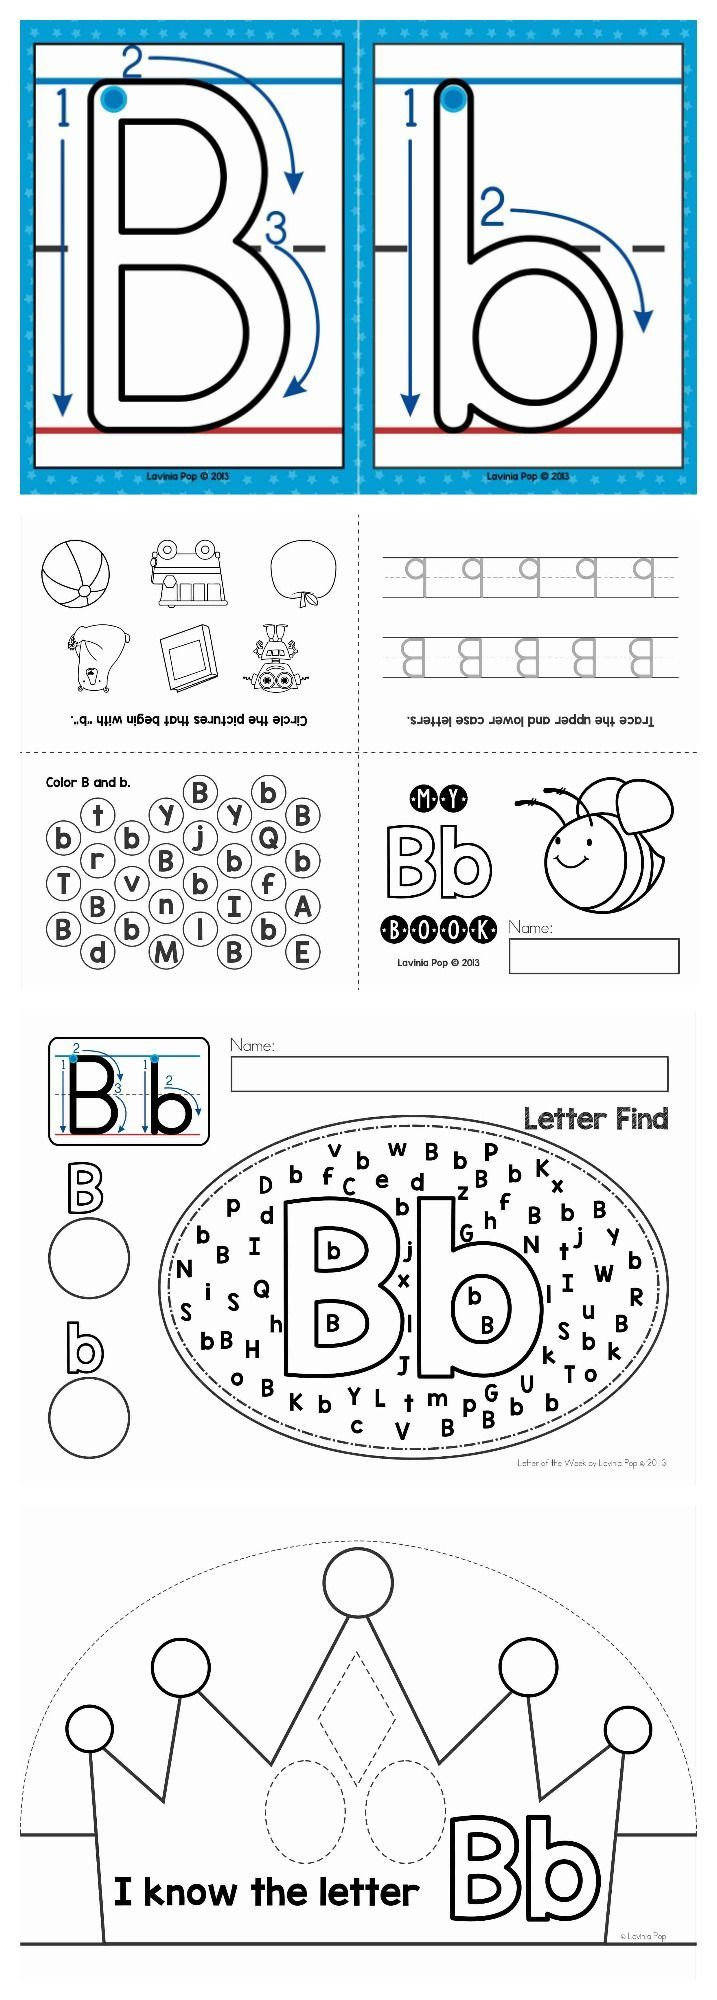 Workbooks letter u worksheets for kindergarten : The 25+ best Letter o worksheets ideas on Pinterest | Letter l ...